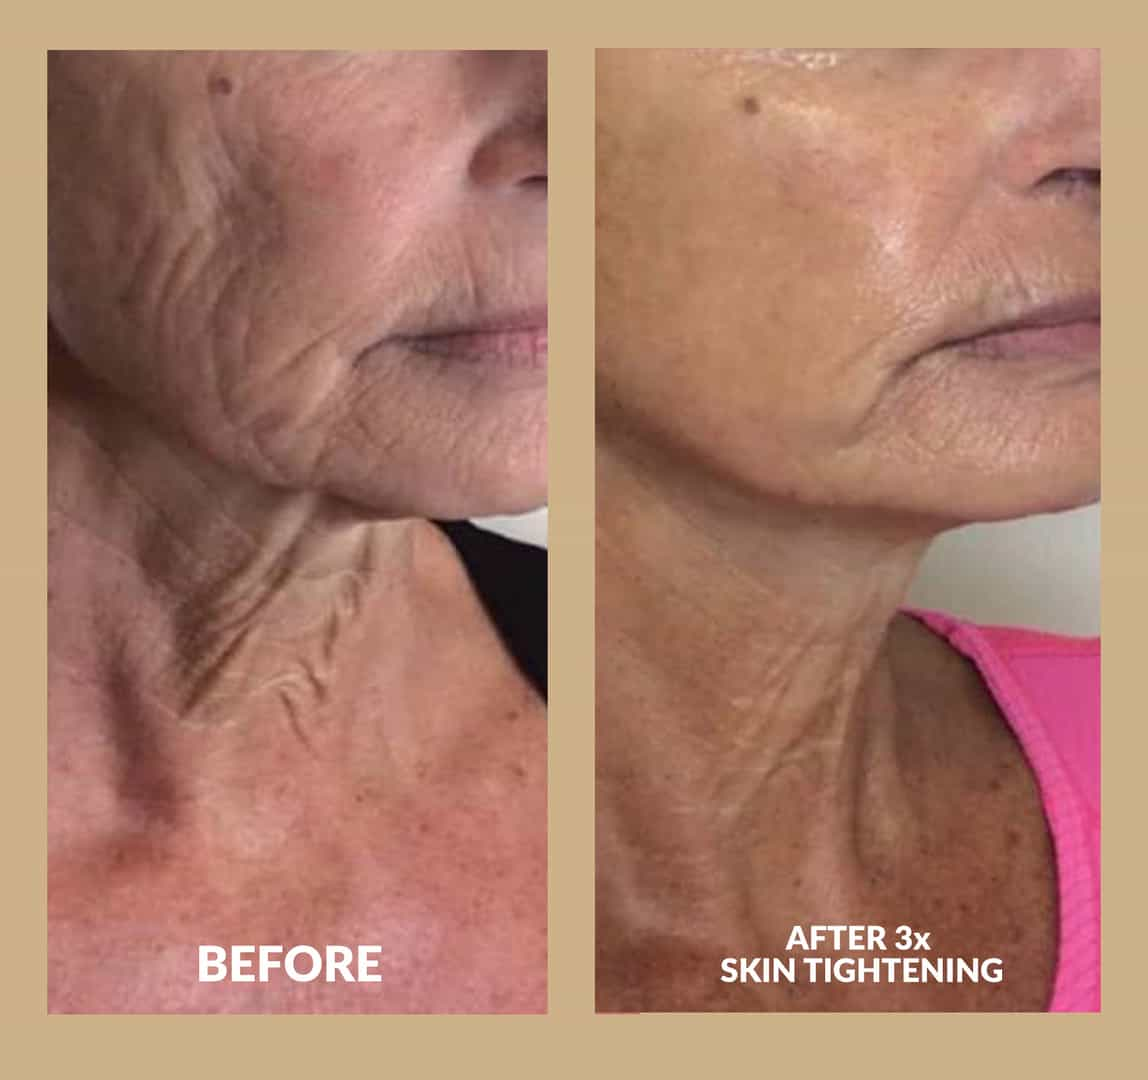 Two images of before and after neck skin tightening treatments